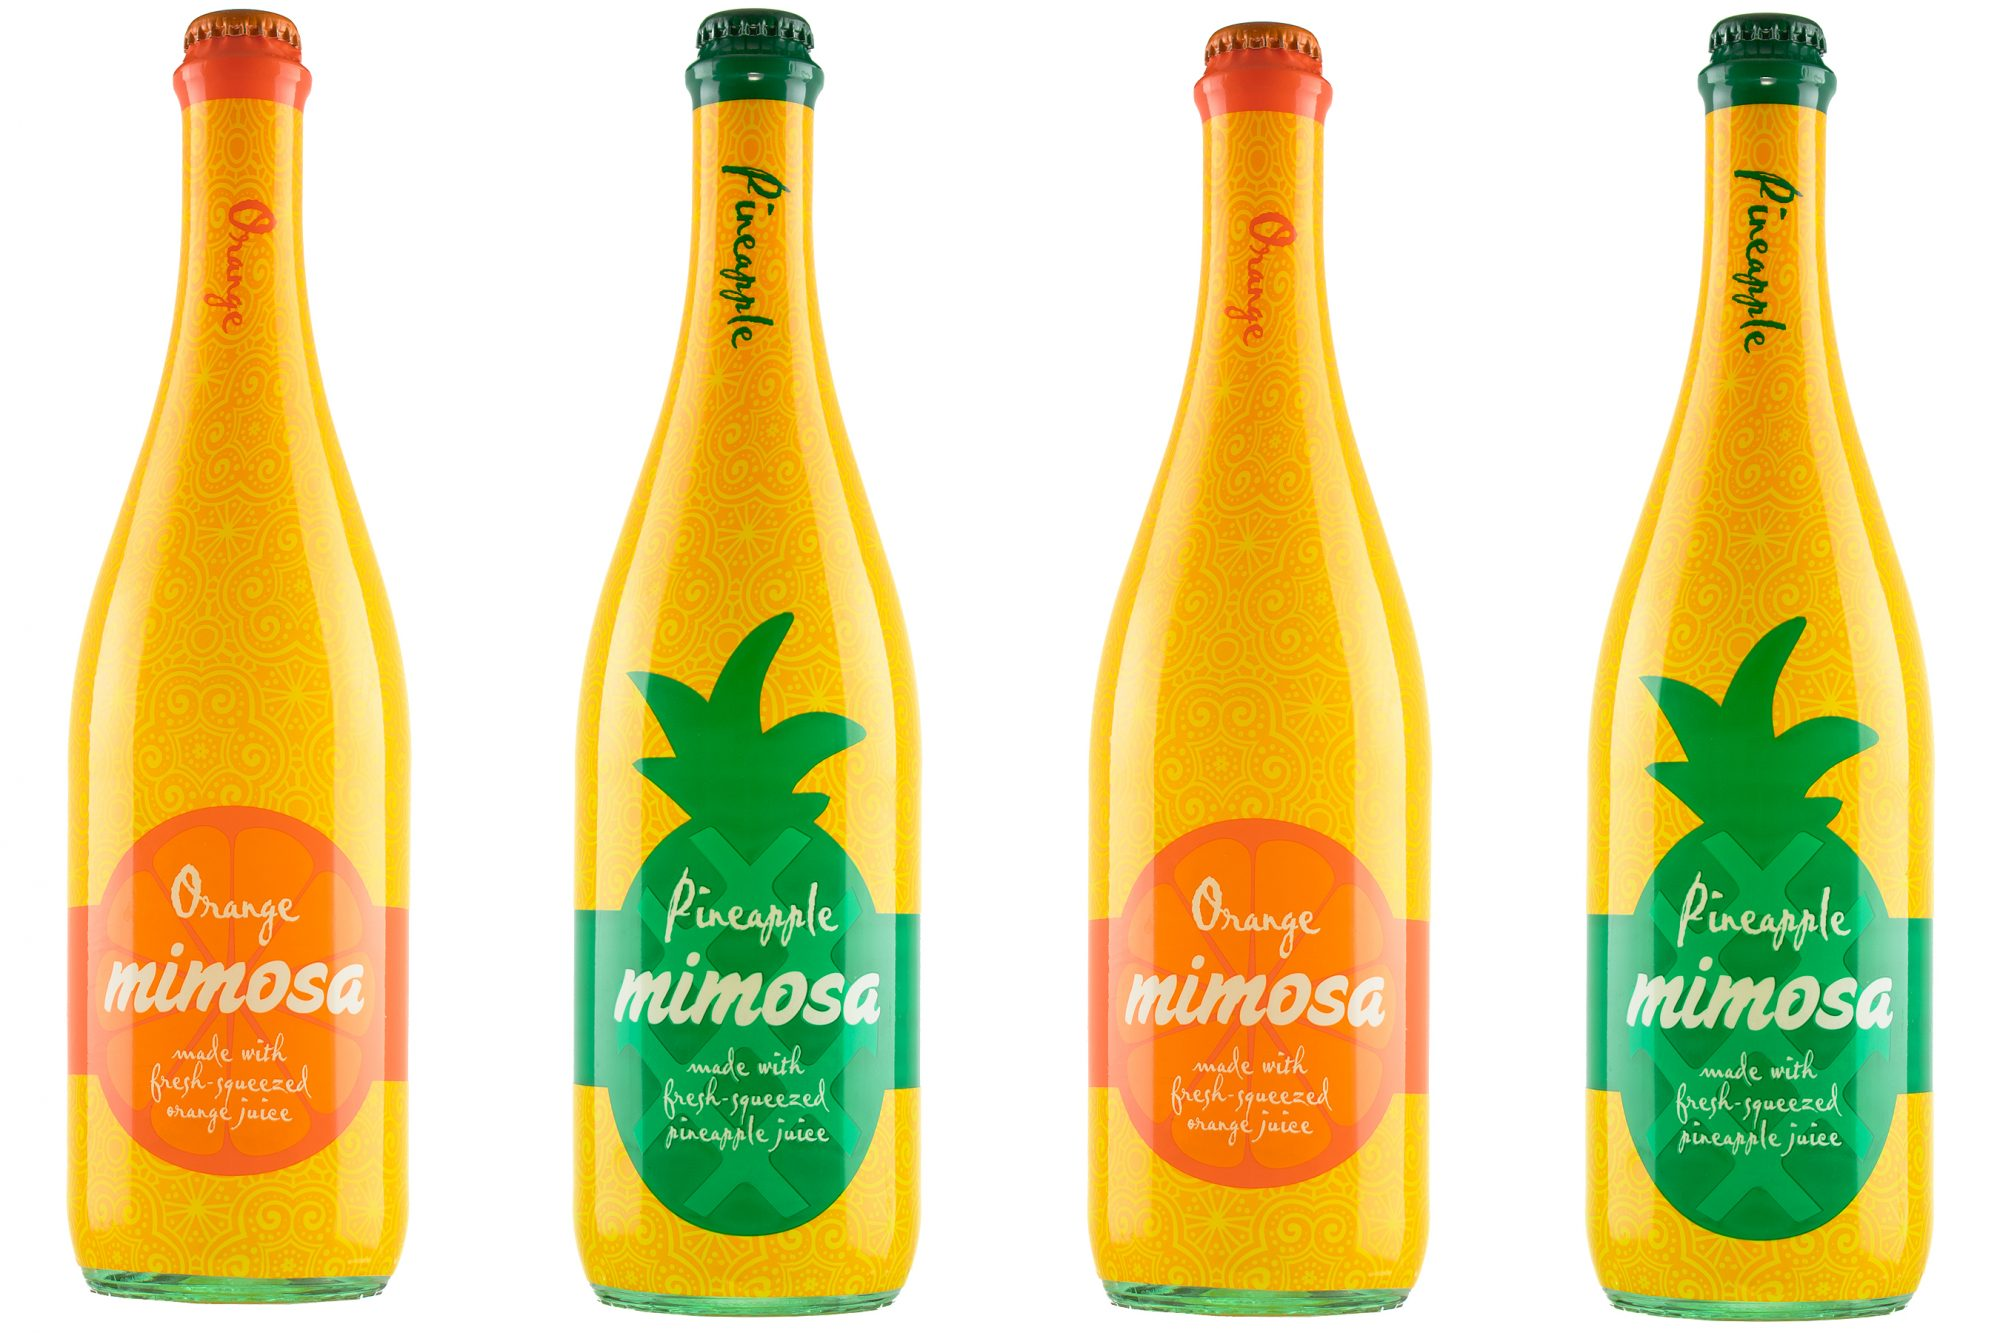 Aldi Is Bringing Back Their Bottled Mimosas—and They Now Come in a Pineapple Flavor